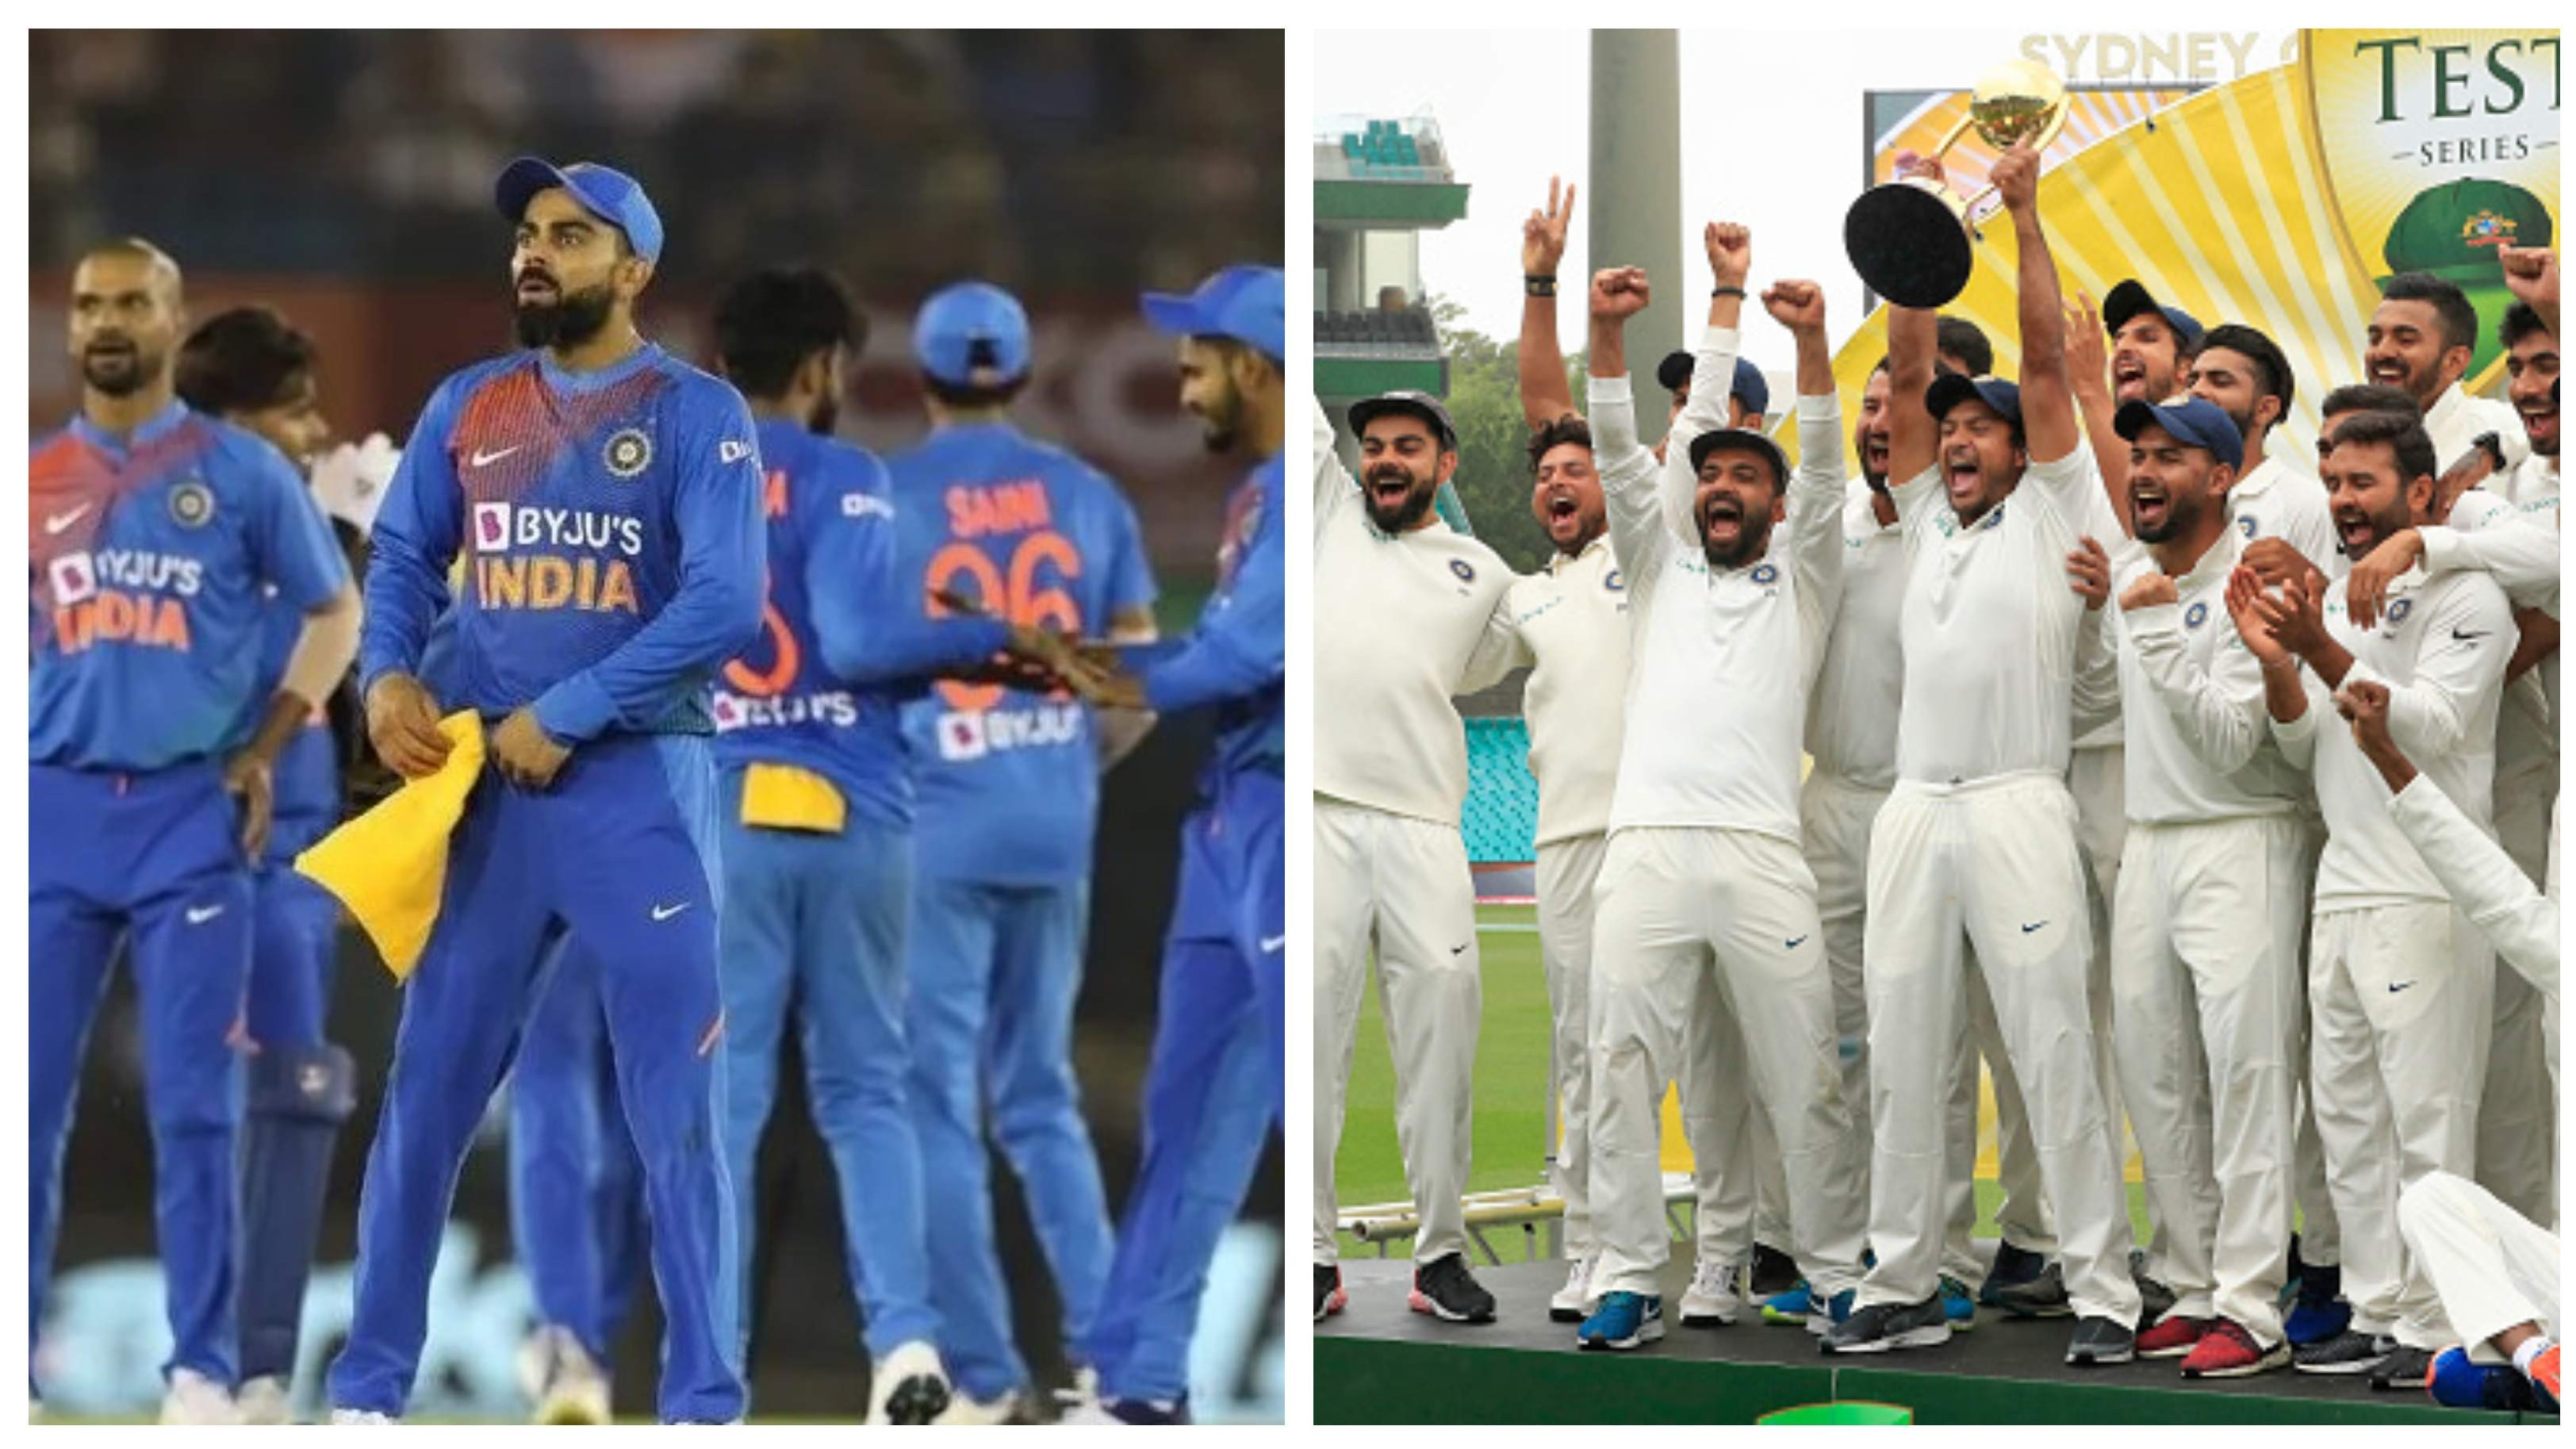 Team India to play non-stop cricket throughout 2021: Report